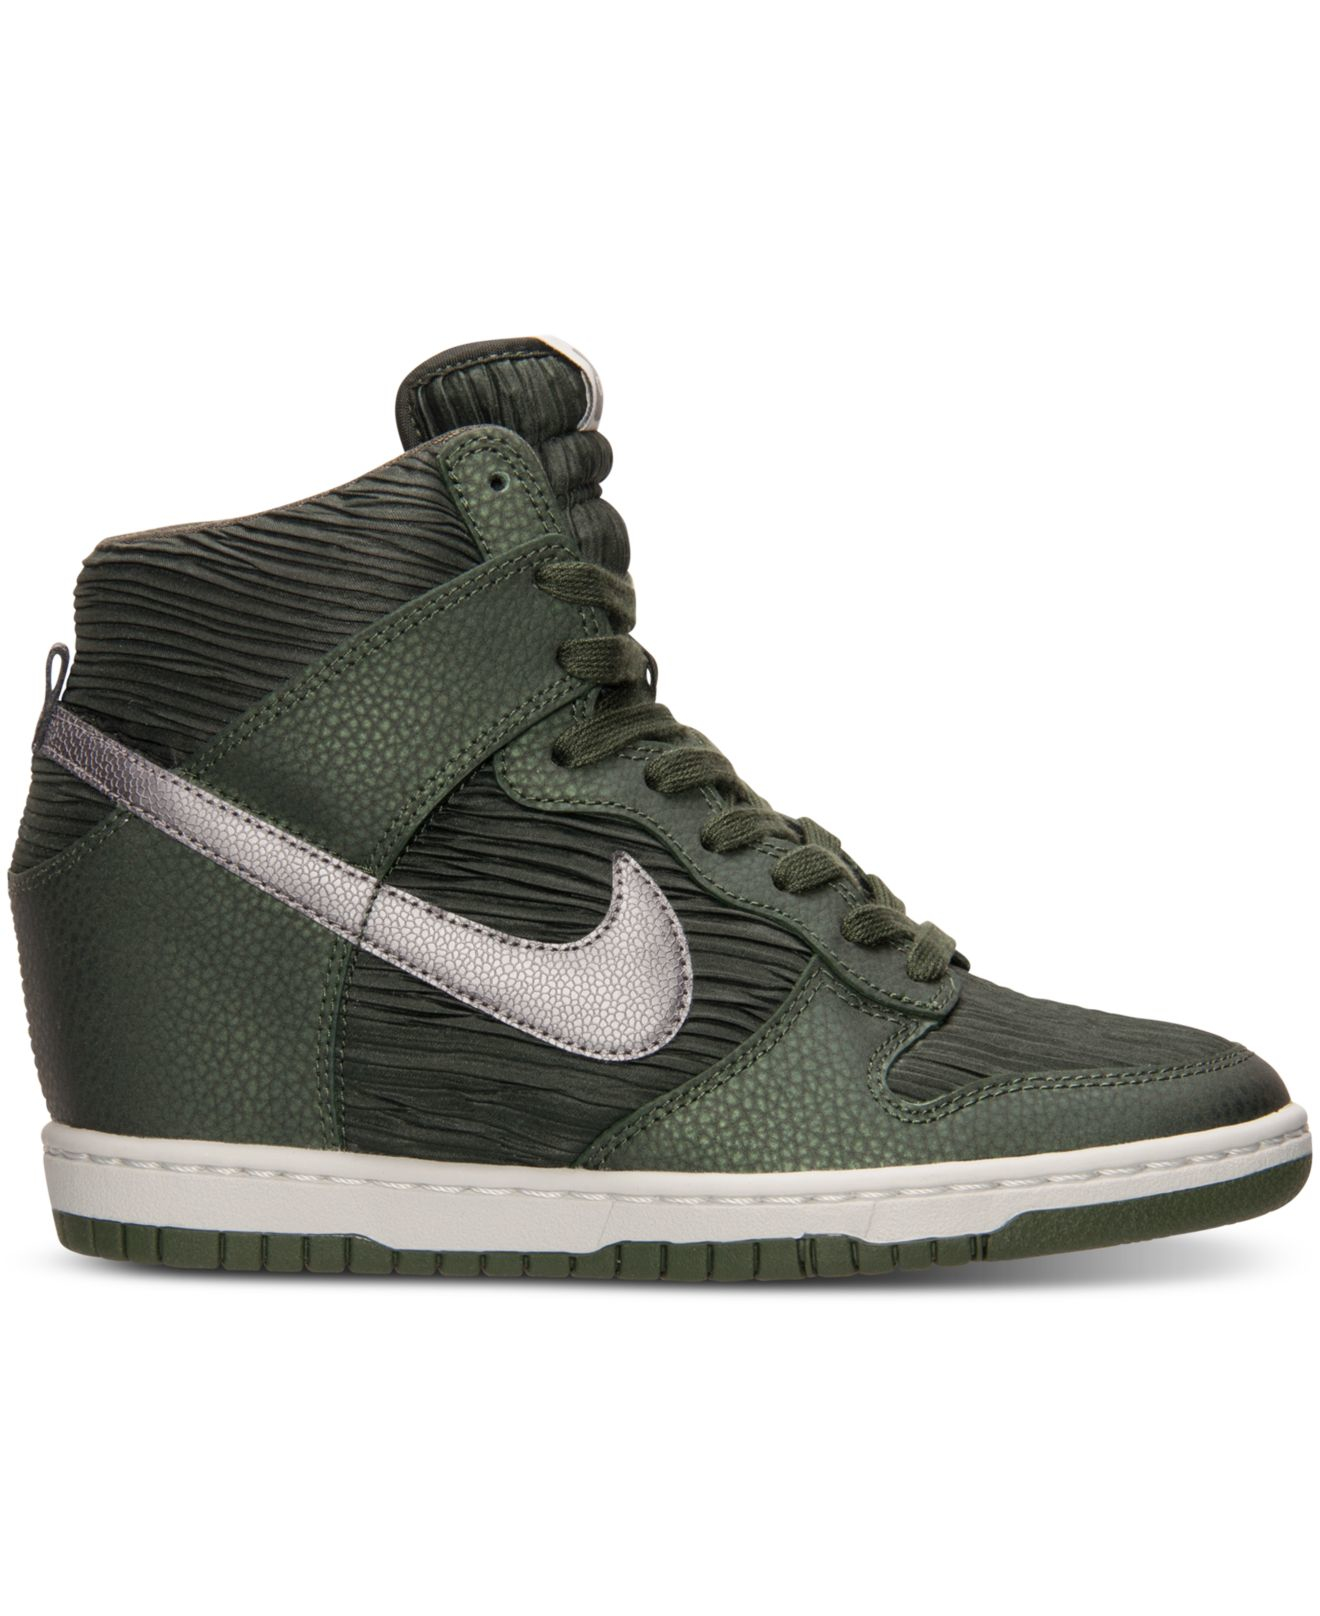 nike women 39 s dunk sky hi casual sneakers from finish line in green lyst. Black Bedroom Furniture Sets. Home Design Ideas